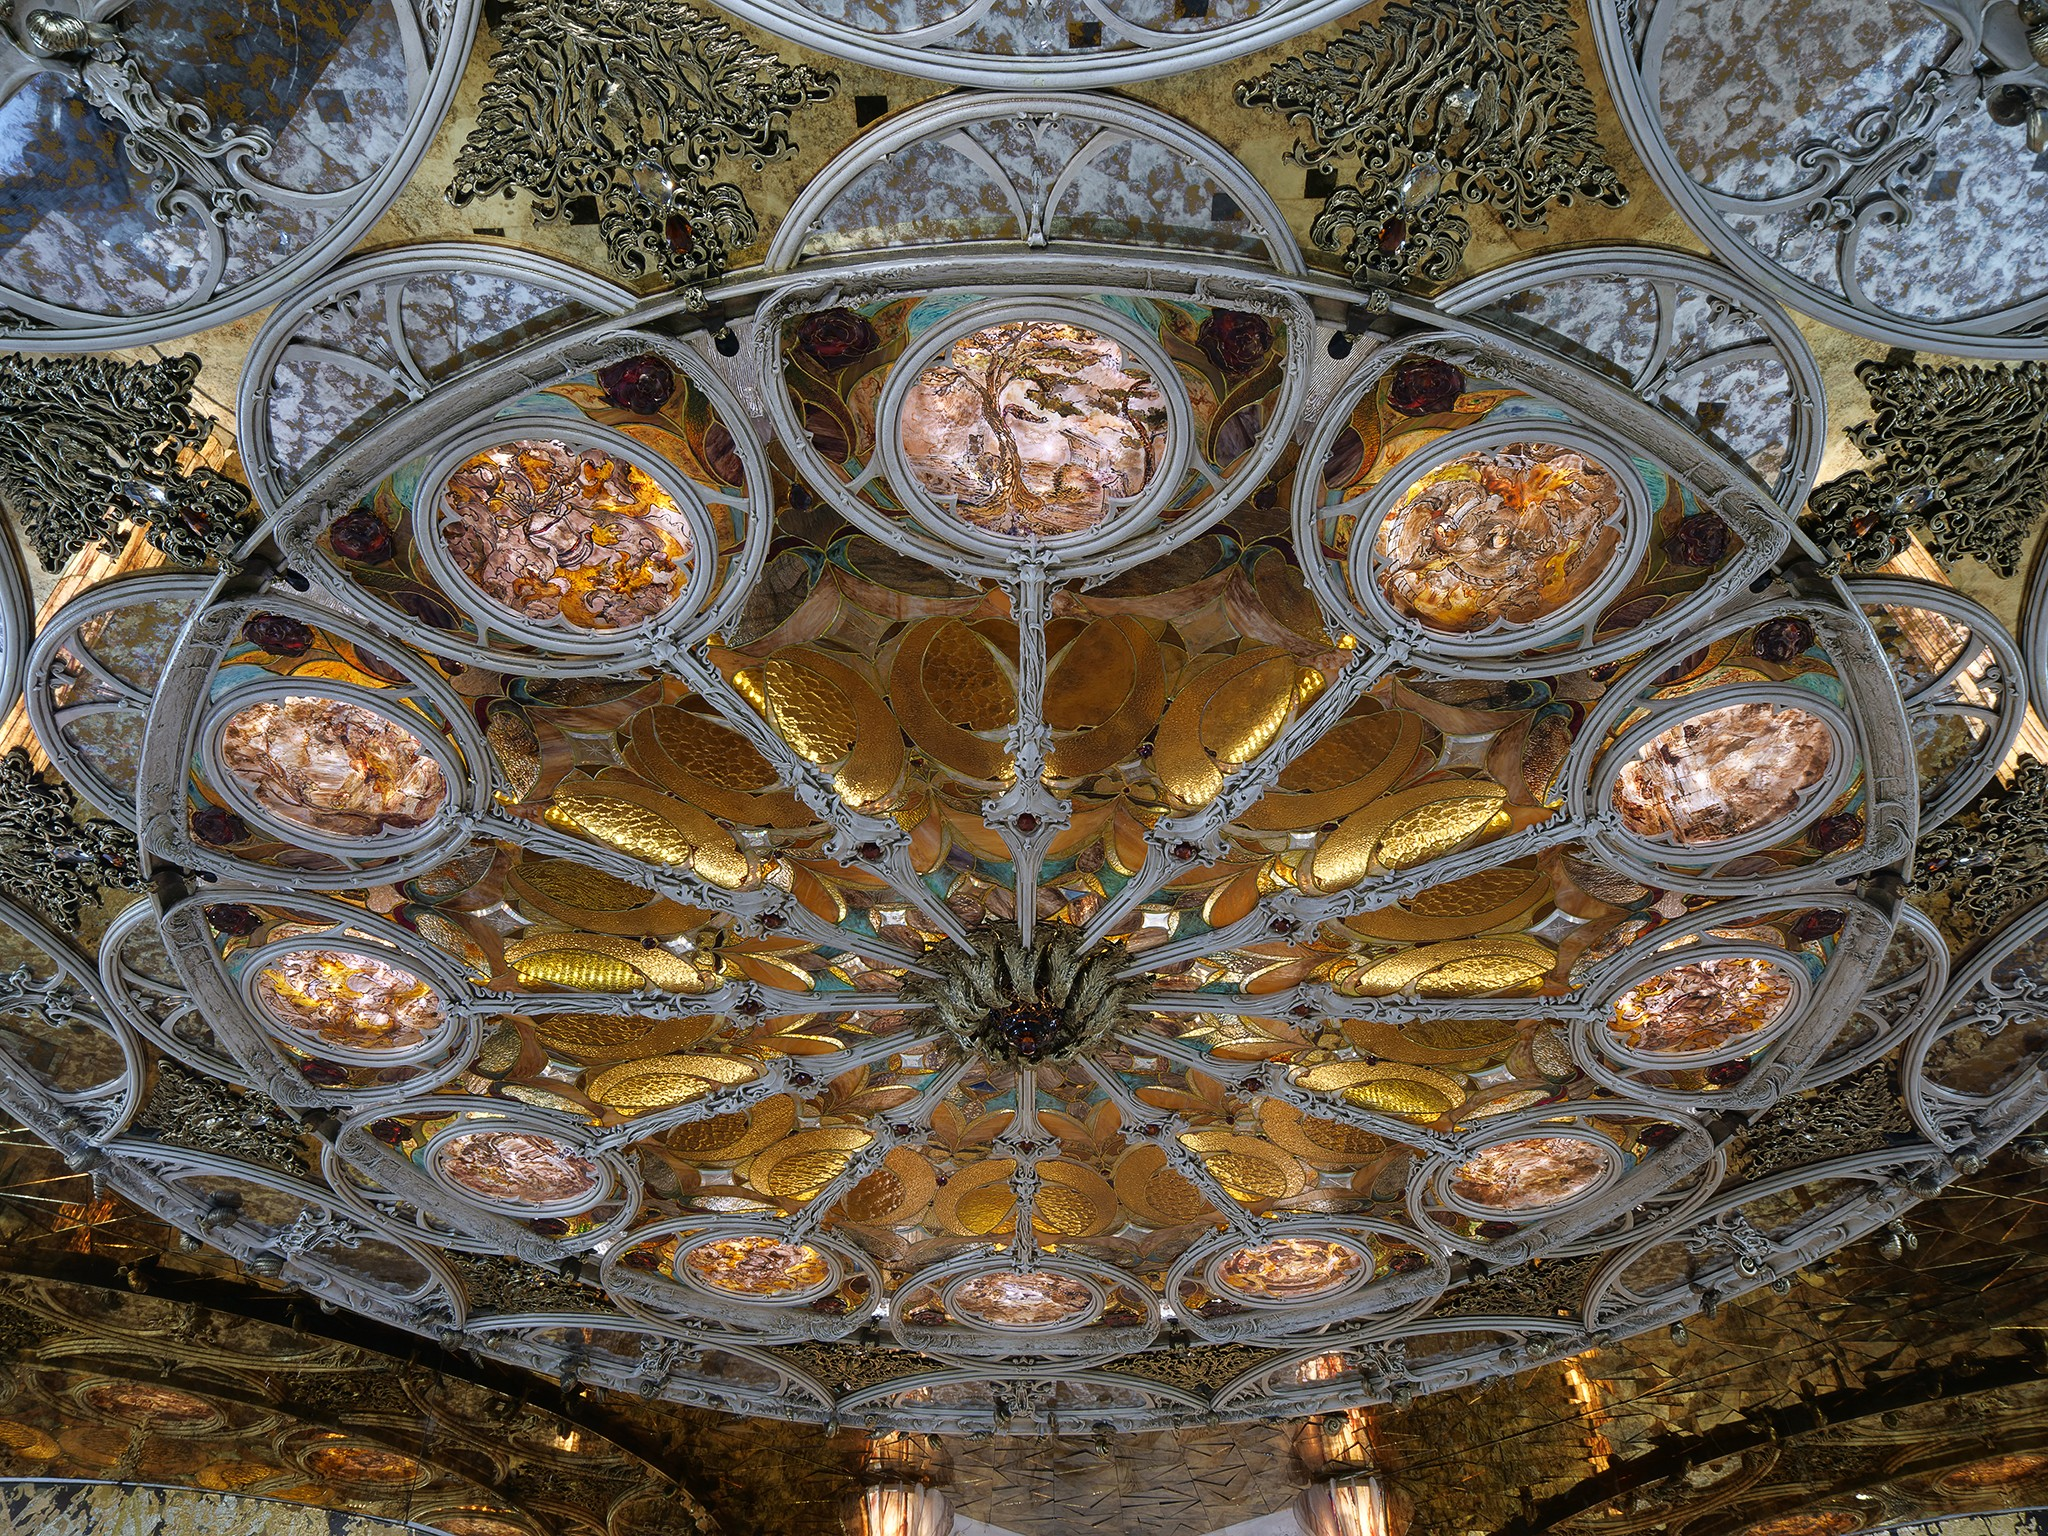 Indoor stained glass photography. Ceiling in interior photography.